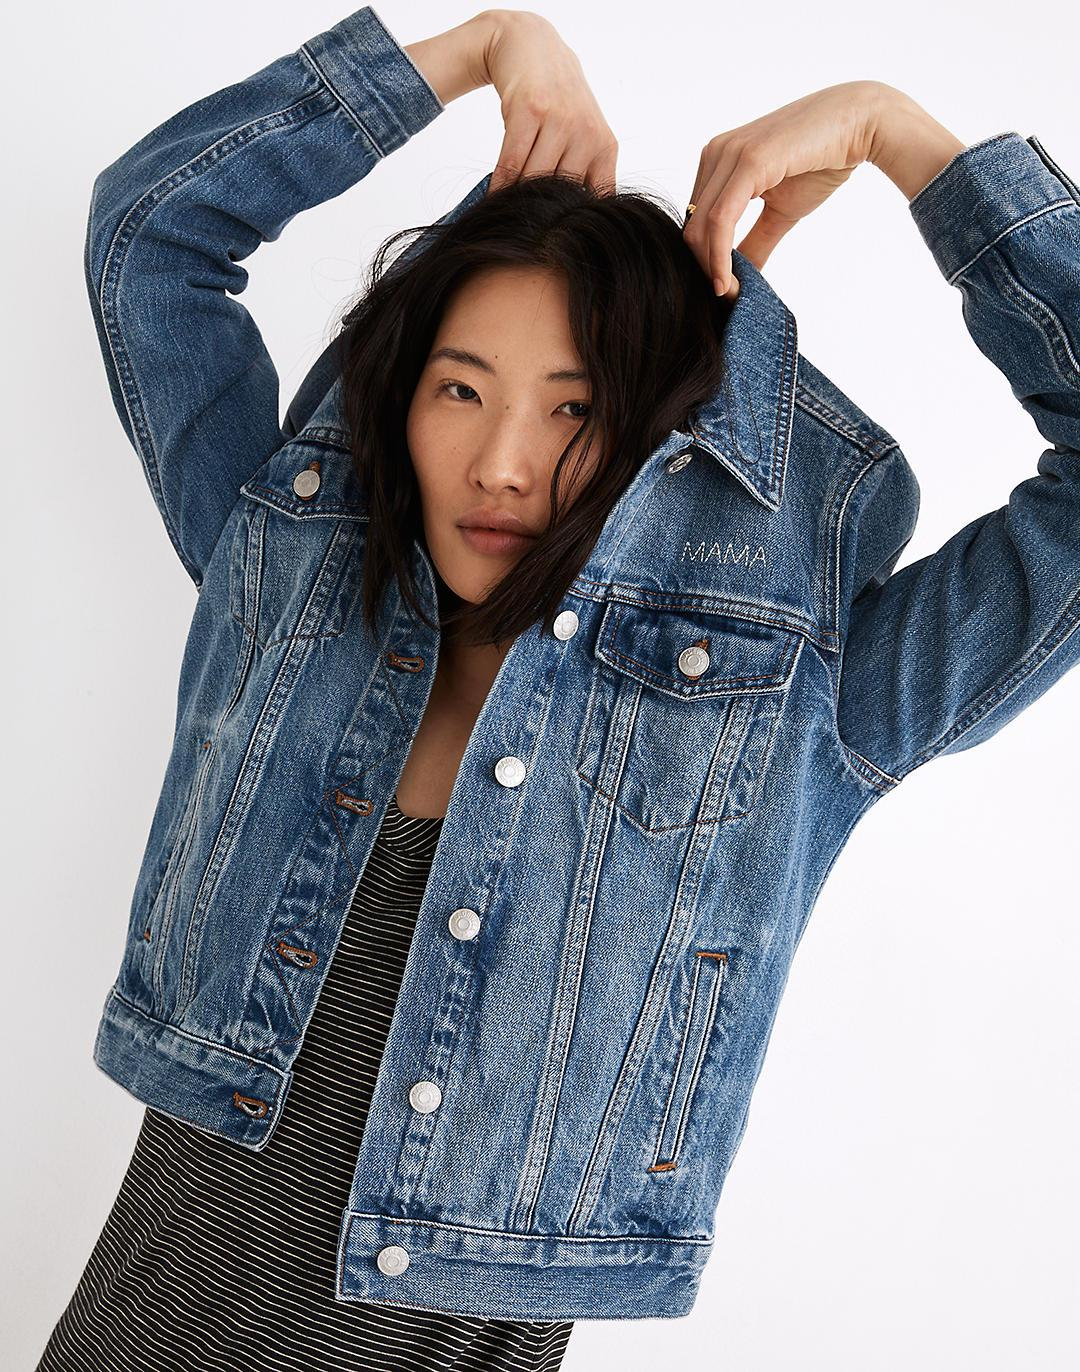 Mama Embroidered Jean Jacket in Medford Wash